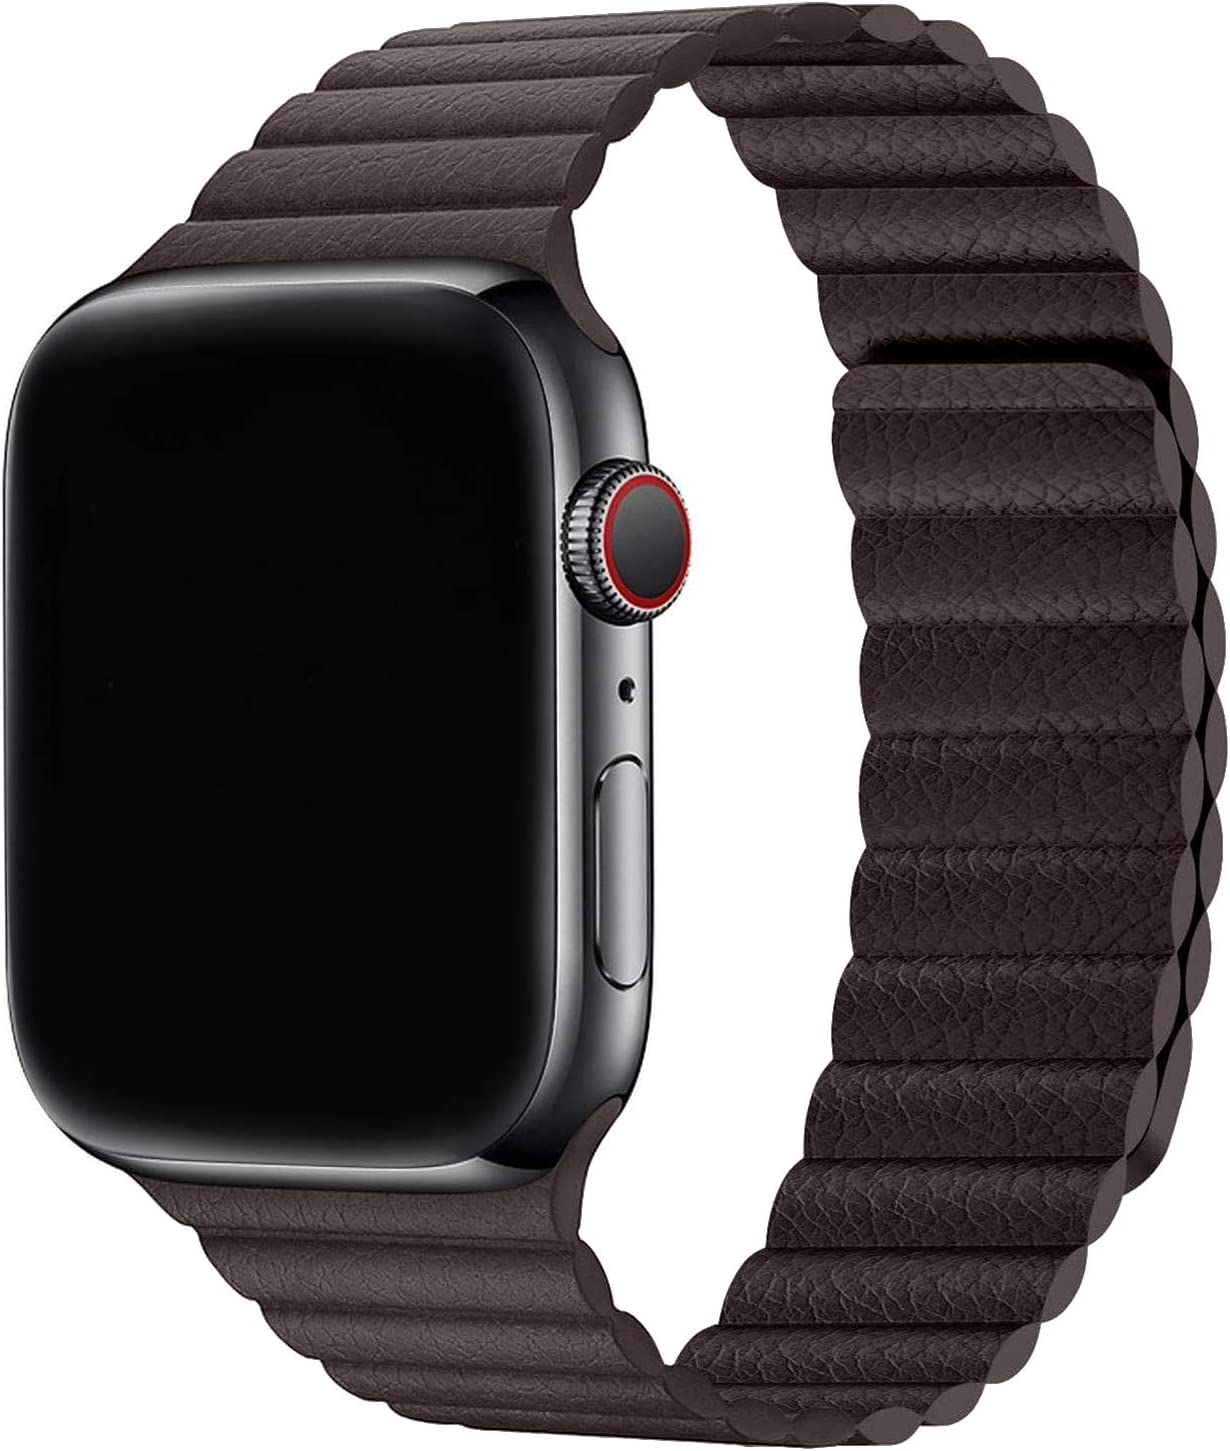 Firsteit Compatible with Apple Watch Leather Band 44mm 42mm 40mm 38mm Adjustable Loop Strap with Magnetic Closure for iWatch Series 6/5/4/3/2/1/SE (Coffee, 42mm/44mm)